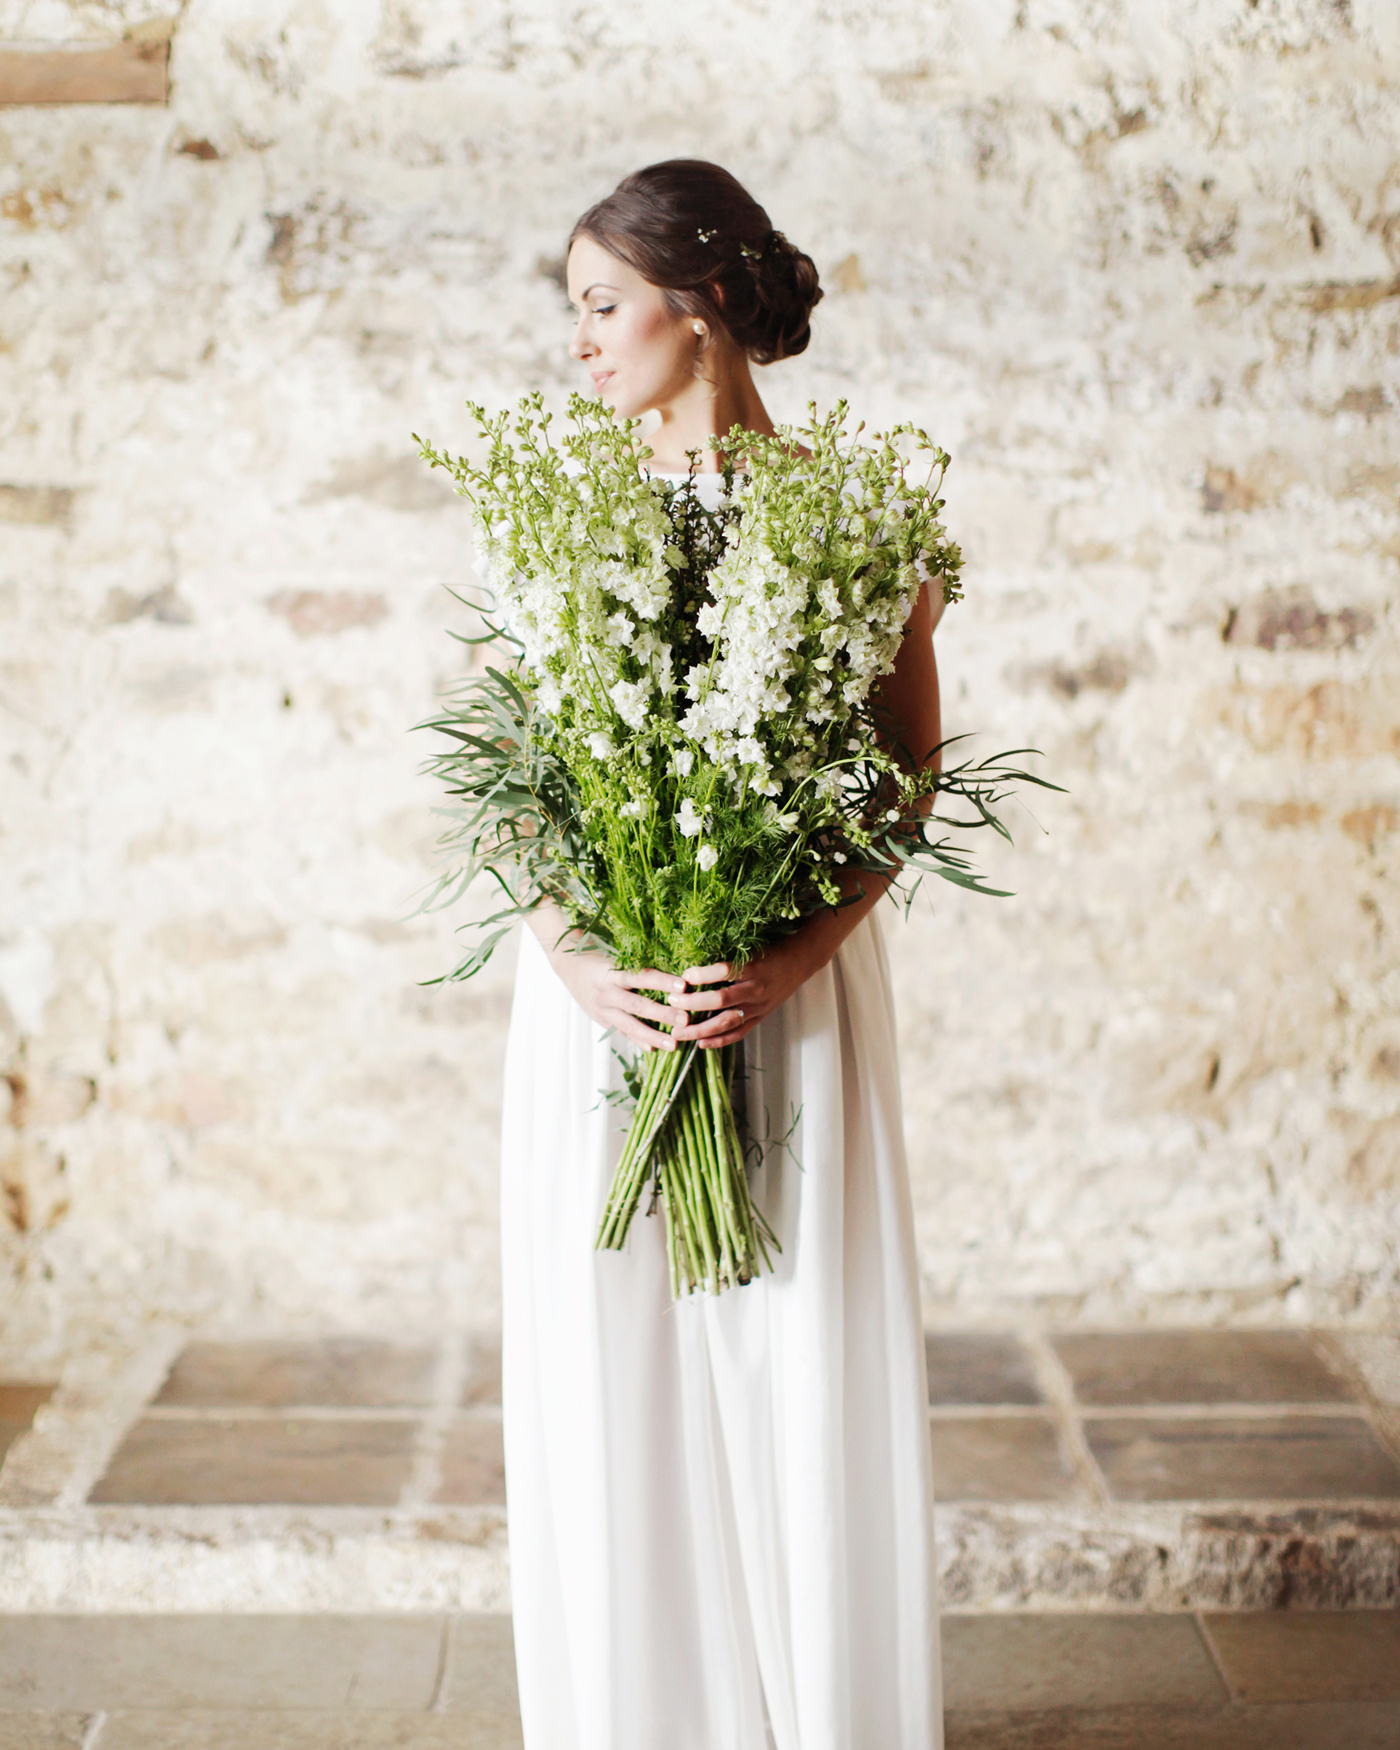 long stemmed greenery and white floral wedding bouquet mix